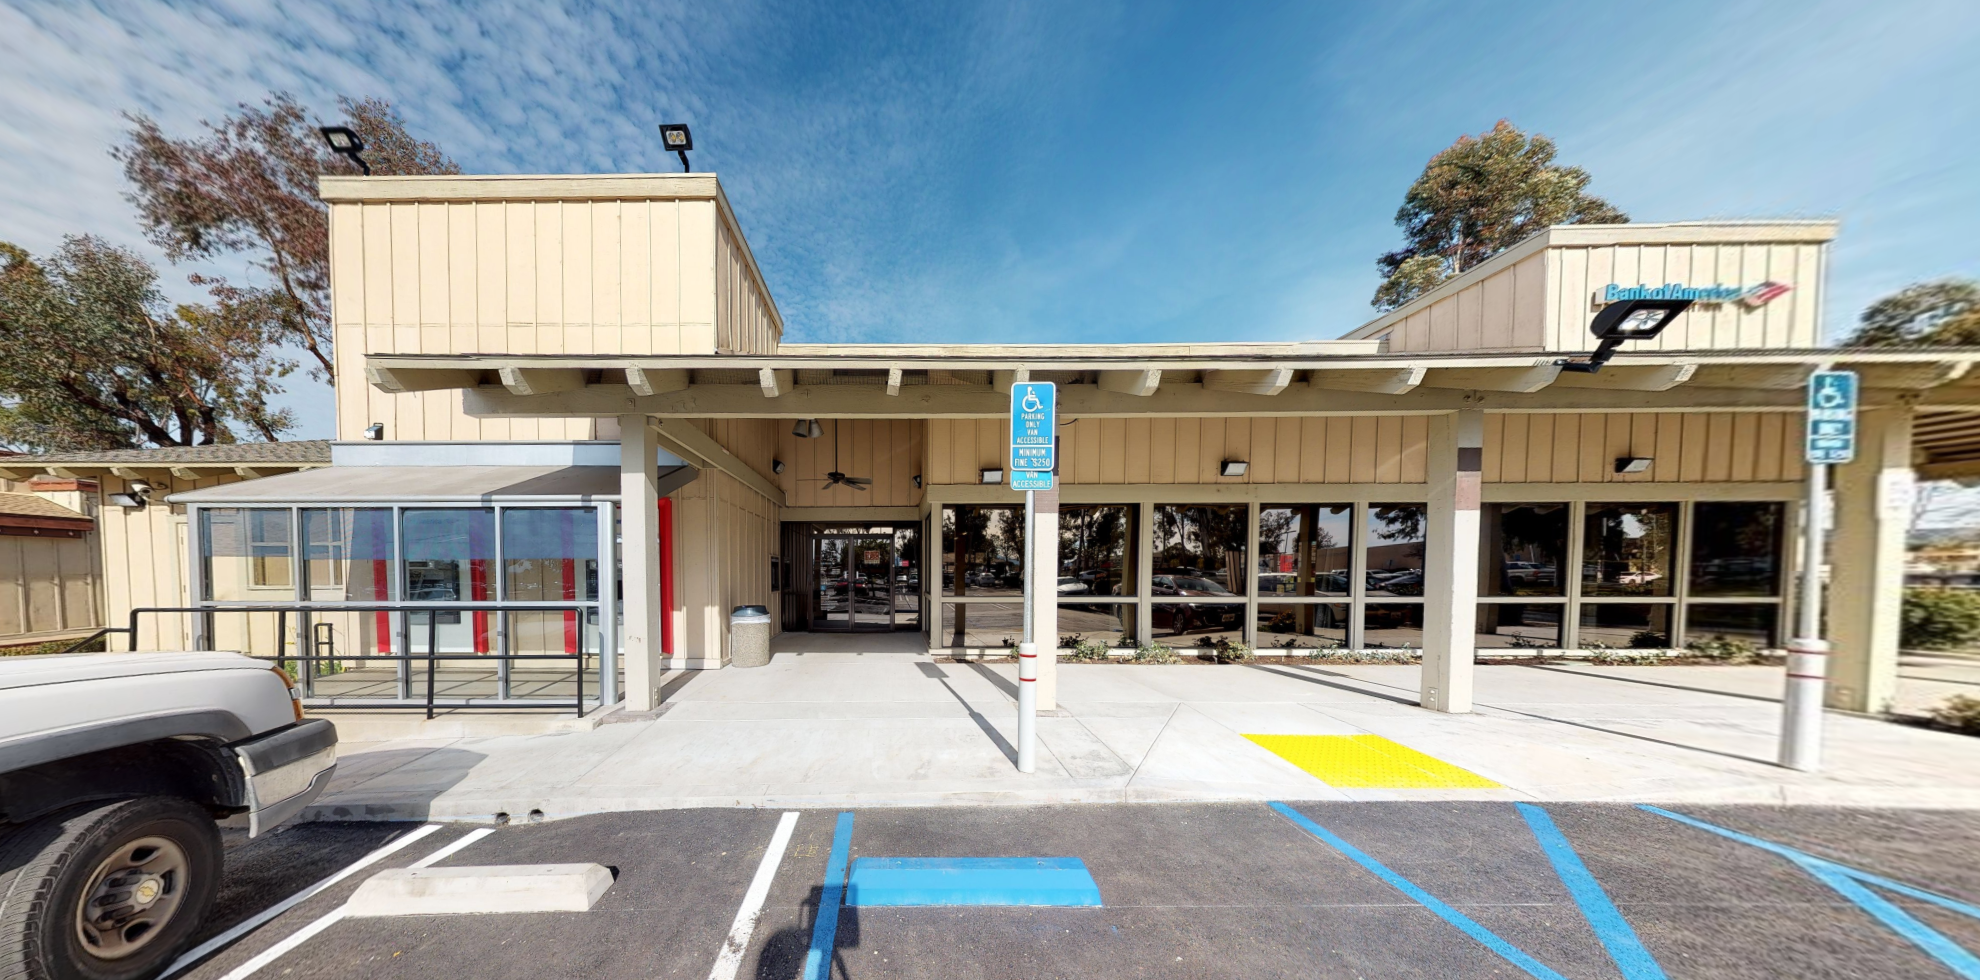 Bank of America financial center with drive-thru ATM | 1407 Main St, Ramona, CA 92065